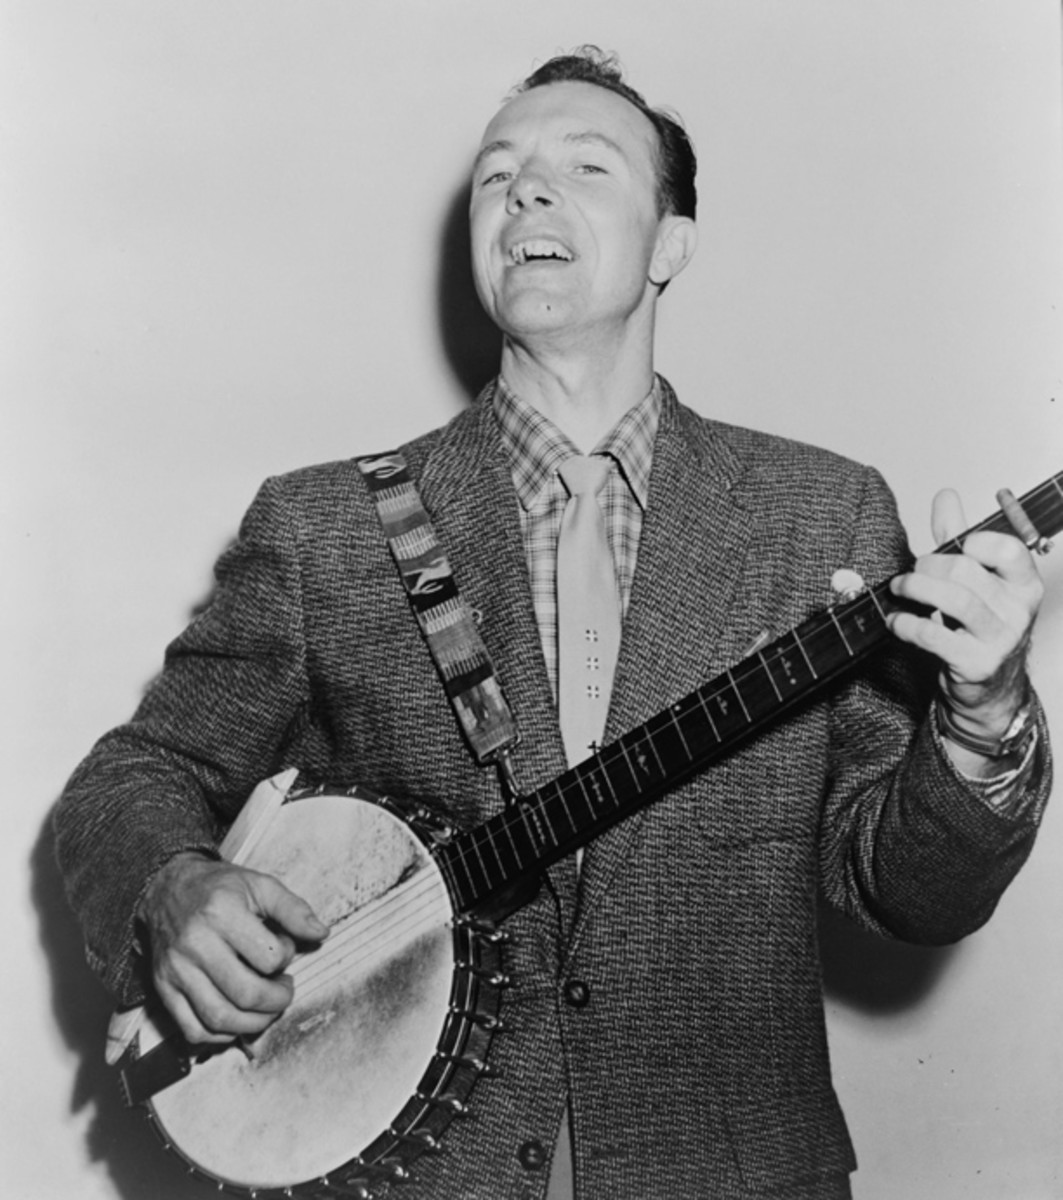 Pete Seeger in 1955. Photo courtesy Library of Congress/New York World Telegram and Sun collection.